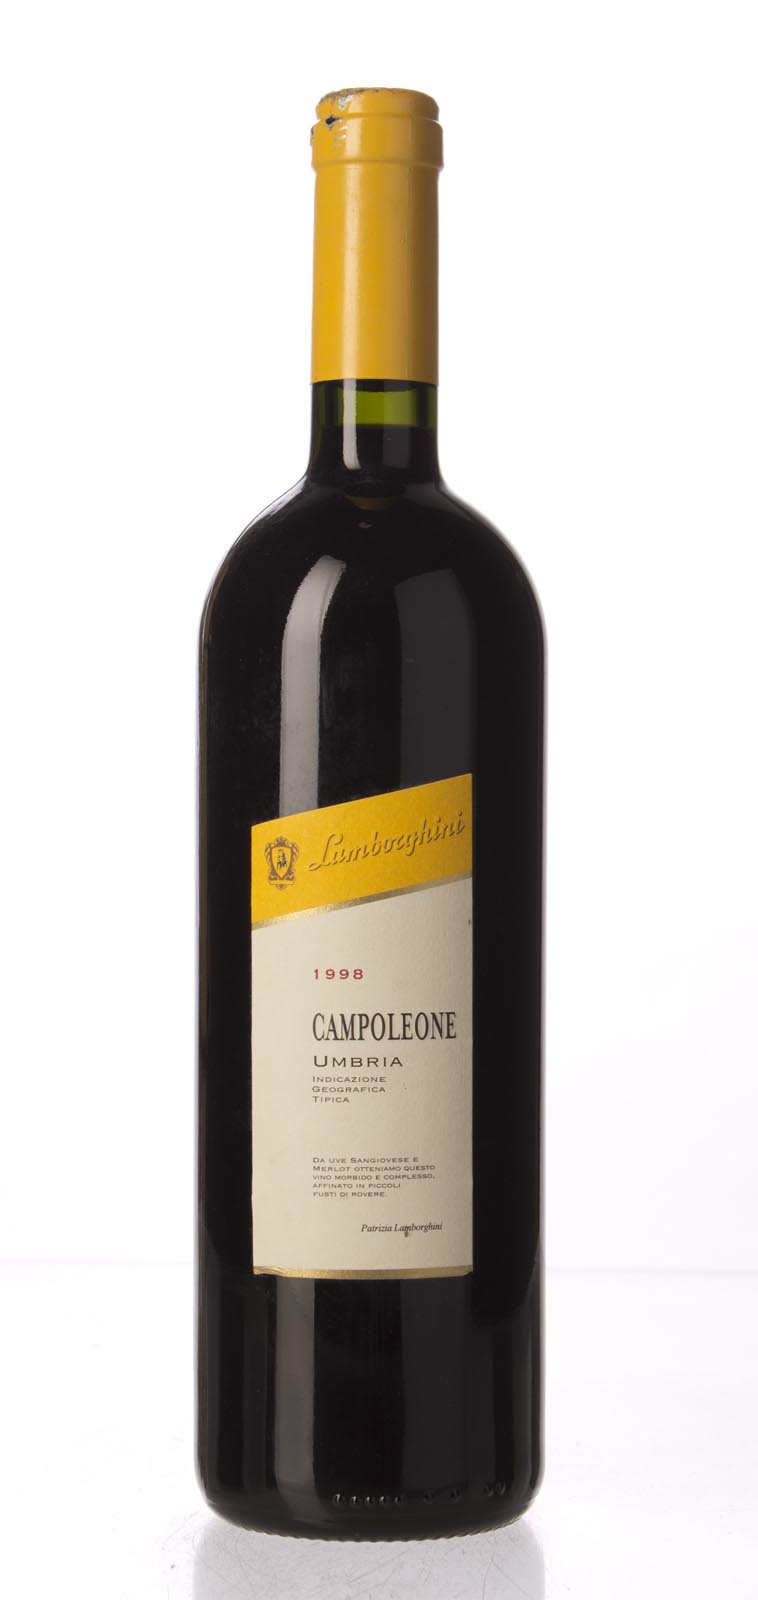 Lamborghini (La Fiorita) Campoleone 1998, 750mL (WA91, WS91) from The BPW - Merchants of rare and fine wines.